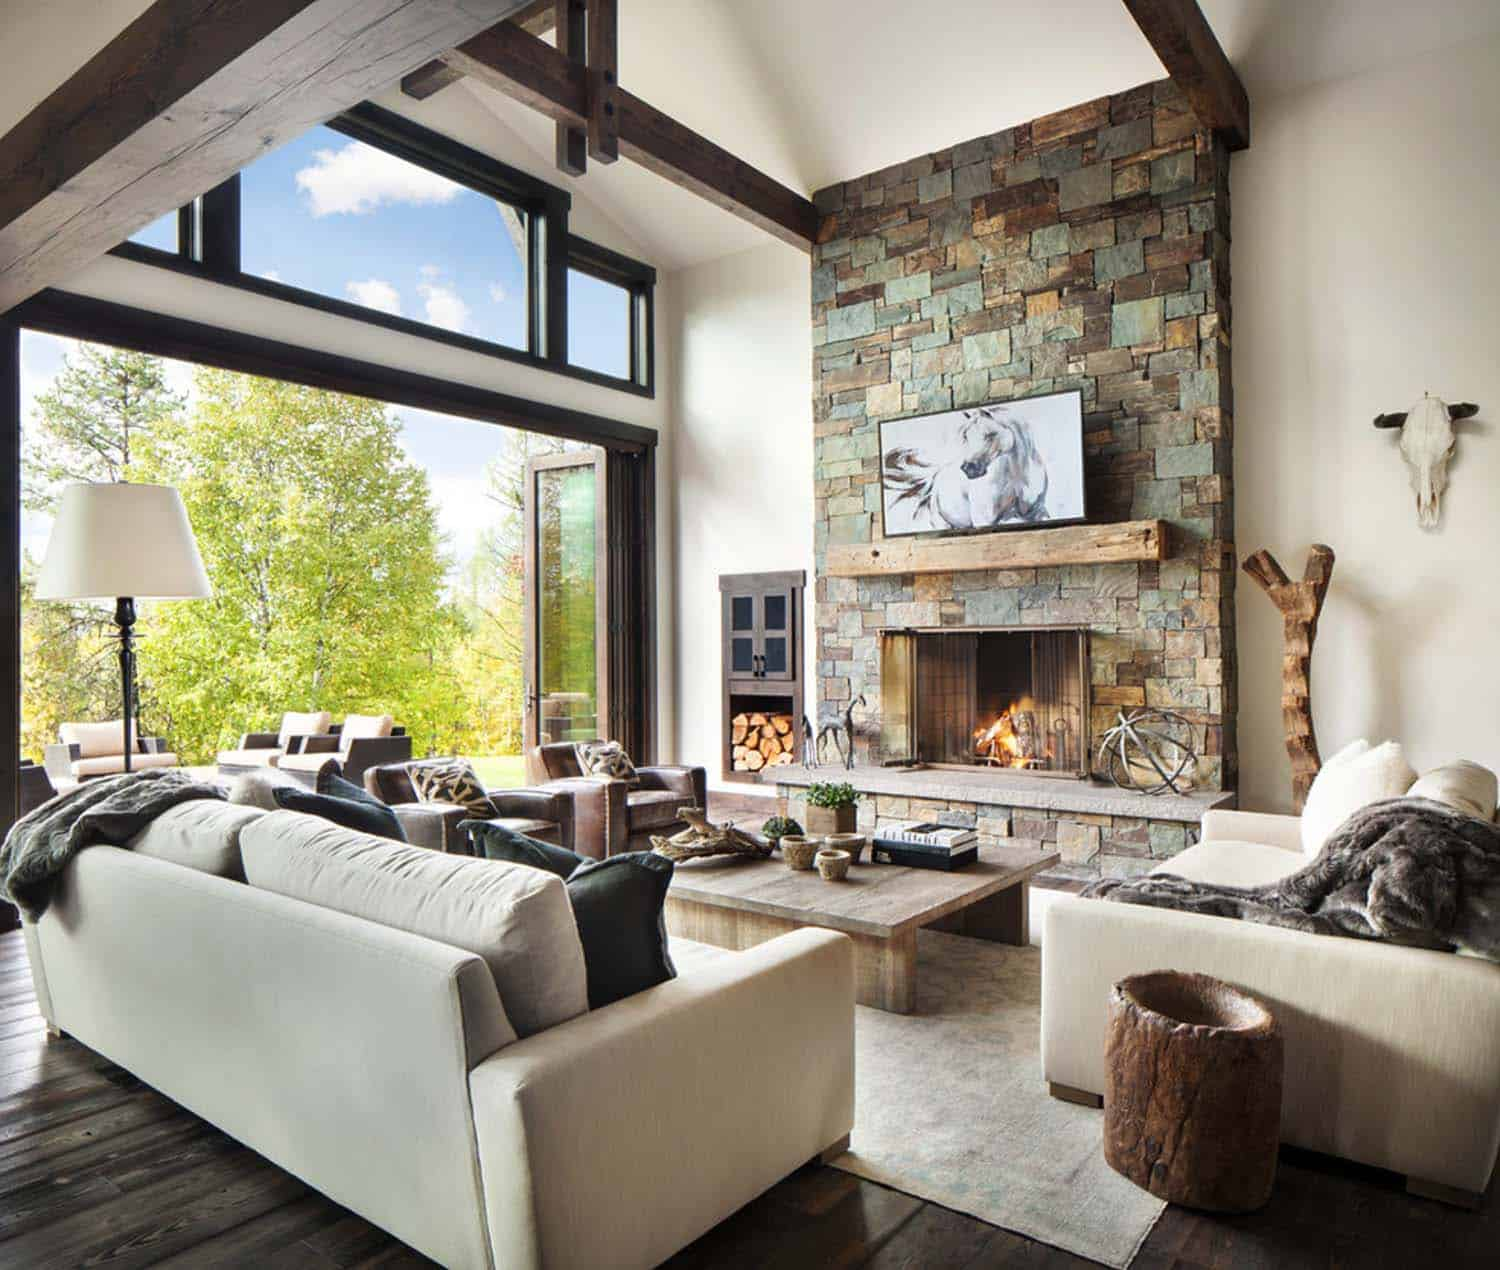 Interior Home Design Photos: Rustic-modern Dwelling Nestled In The Northern Rocky Mountains